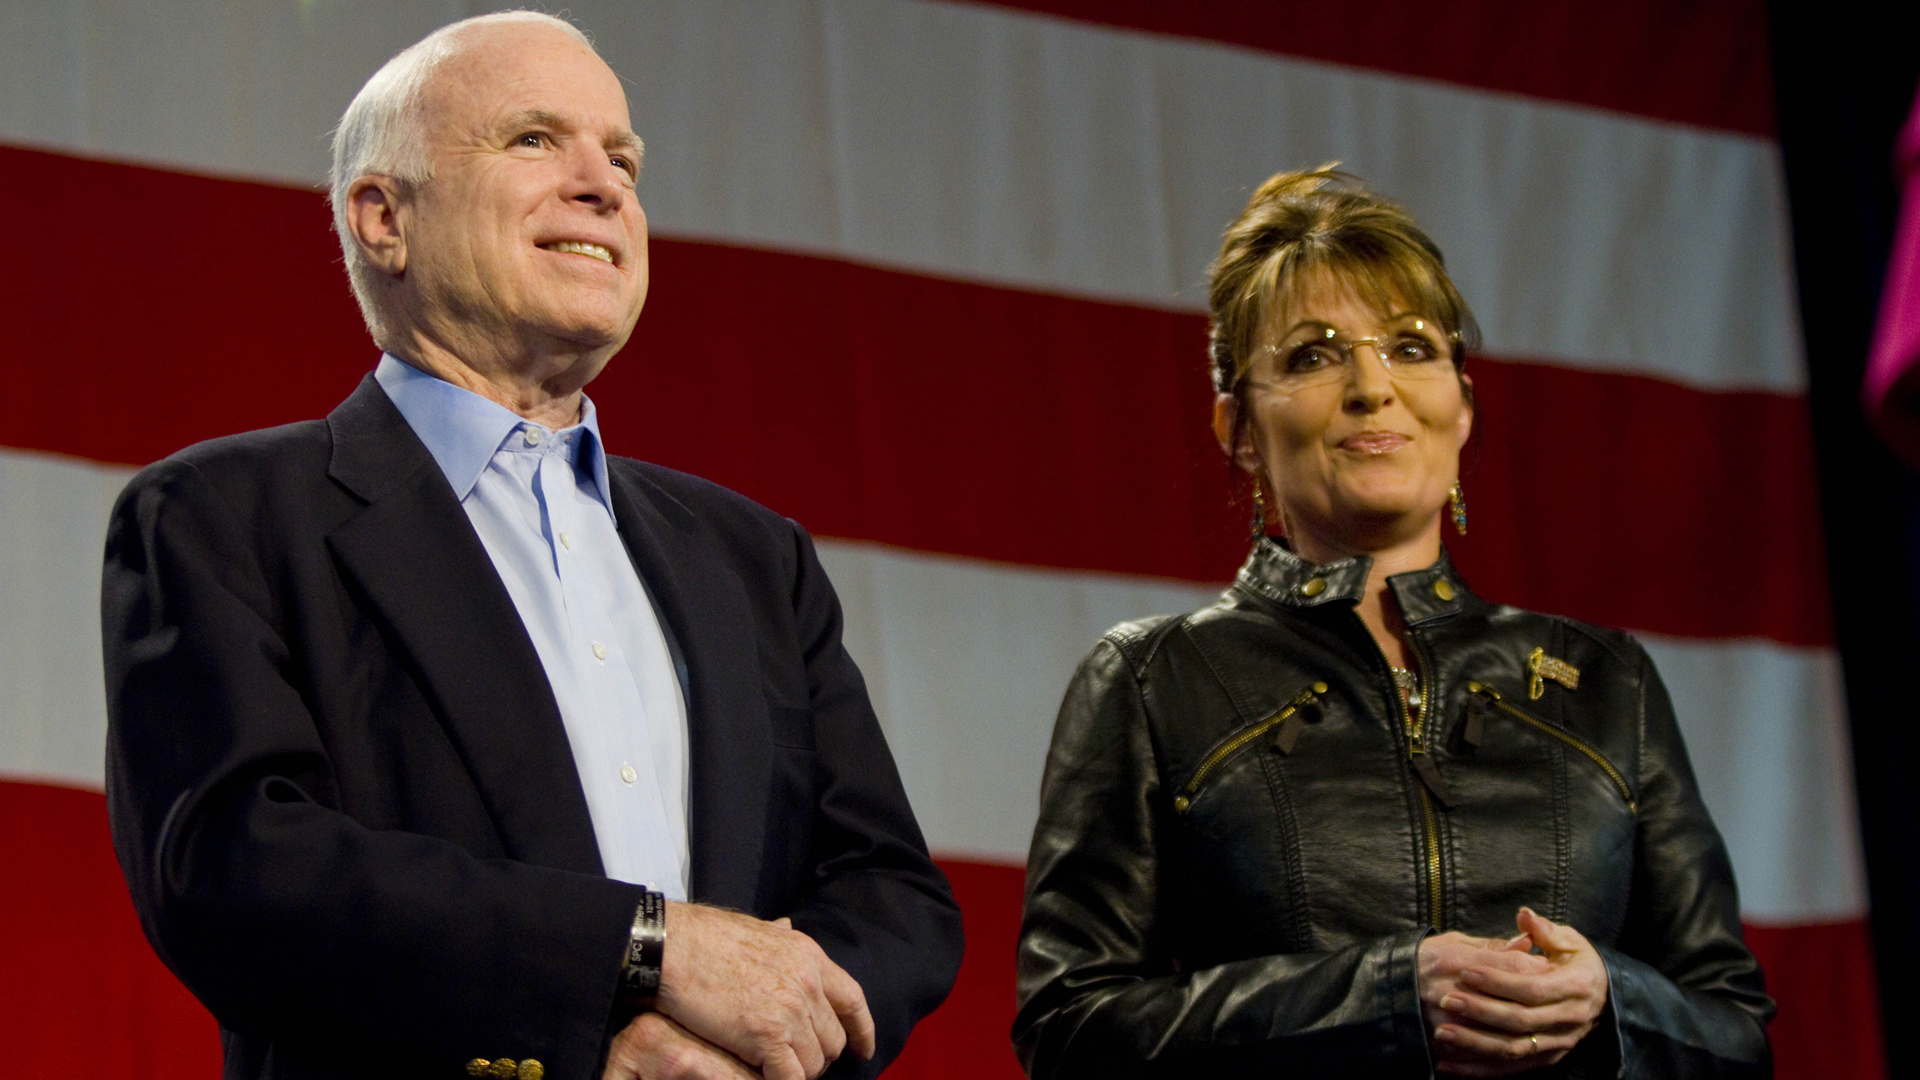 Sen. John McCain and former Alaska Gov. Sarah Palin attend a campaign rally at Pima County Fairgrounds on March 26, 2010 in Tucson, Arizona. (Credit: Darren Hauck/Getty Images)